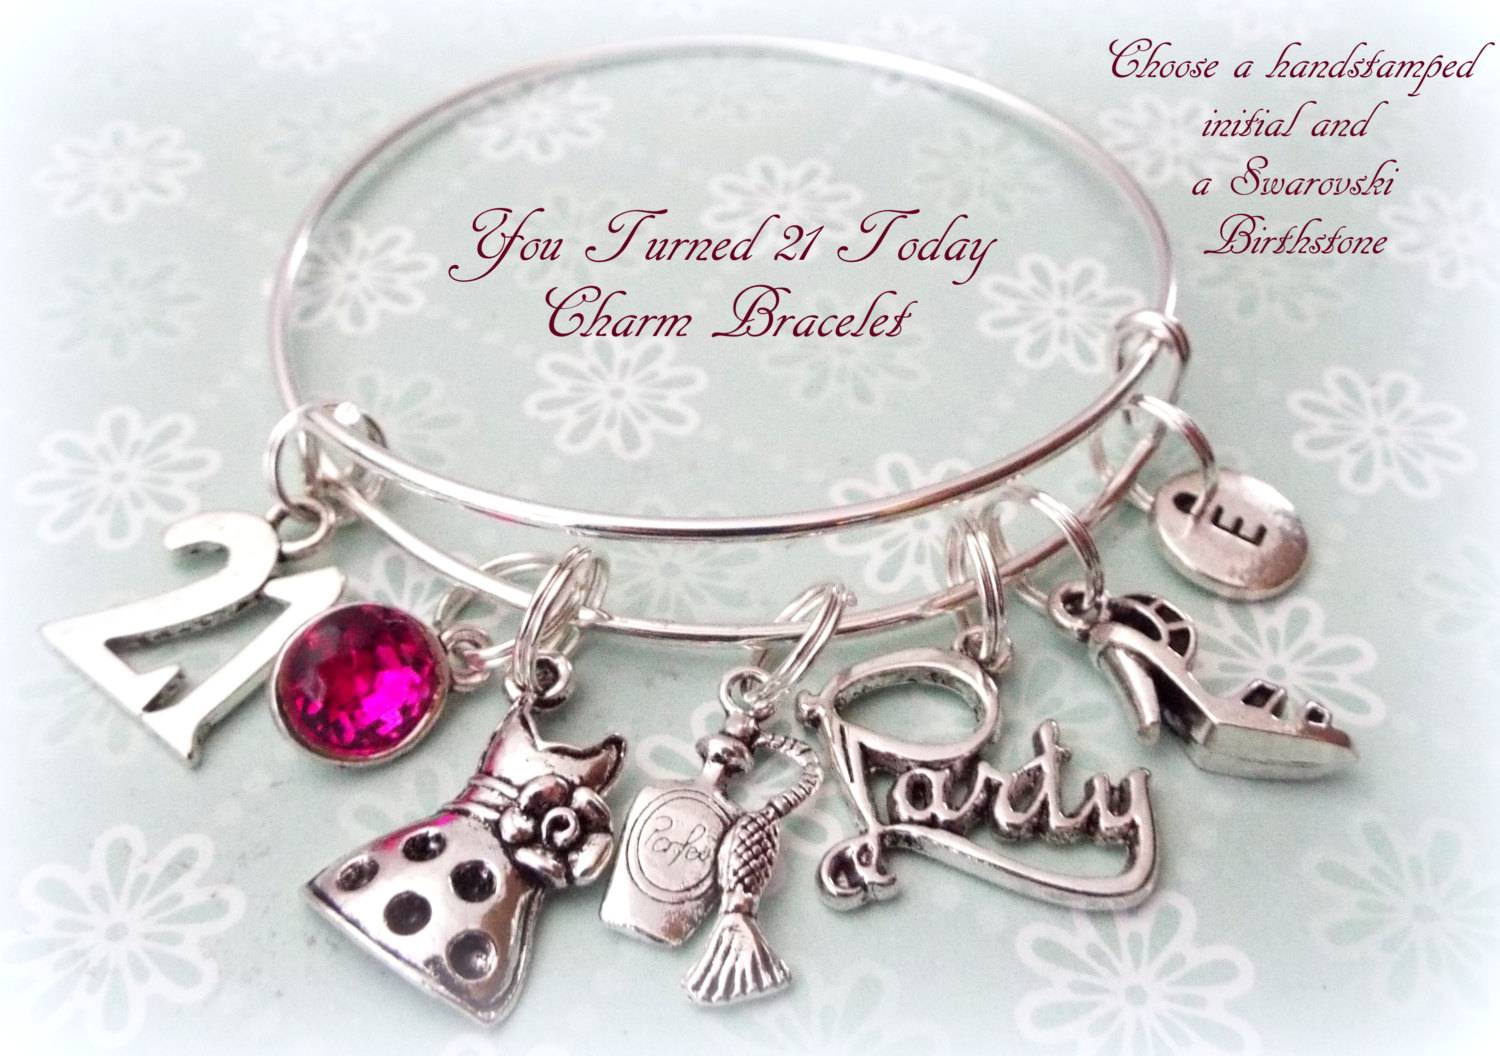 Special Daughter 21st Birthday Charm Bracelet with Gift Box Women's Jewellery CwPCkOCN